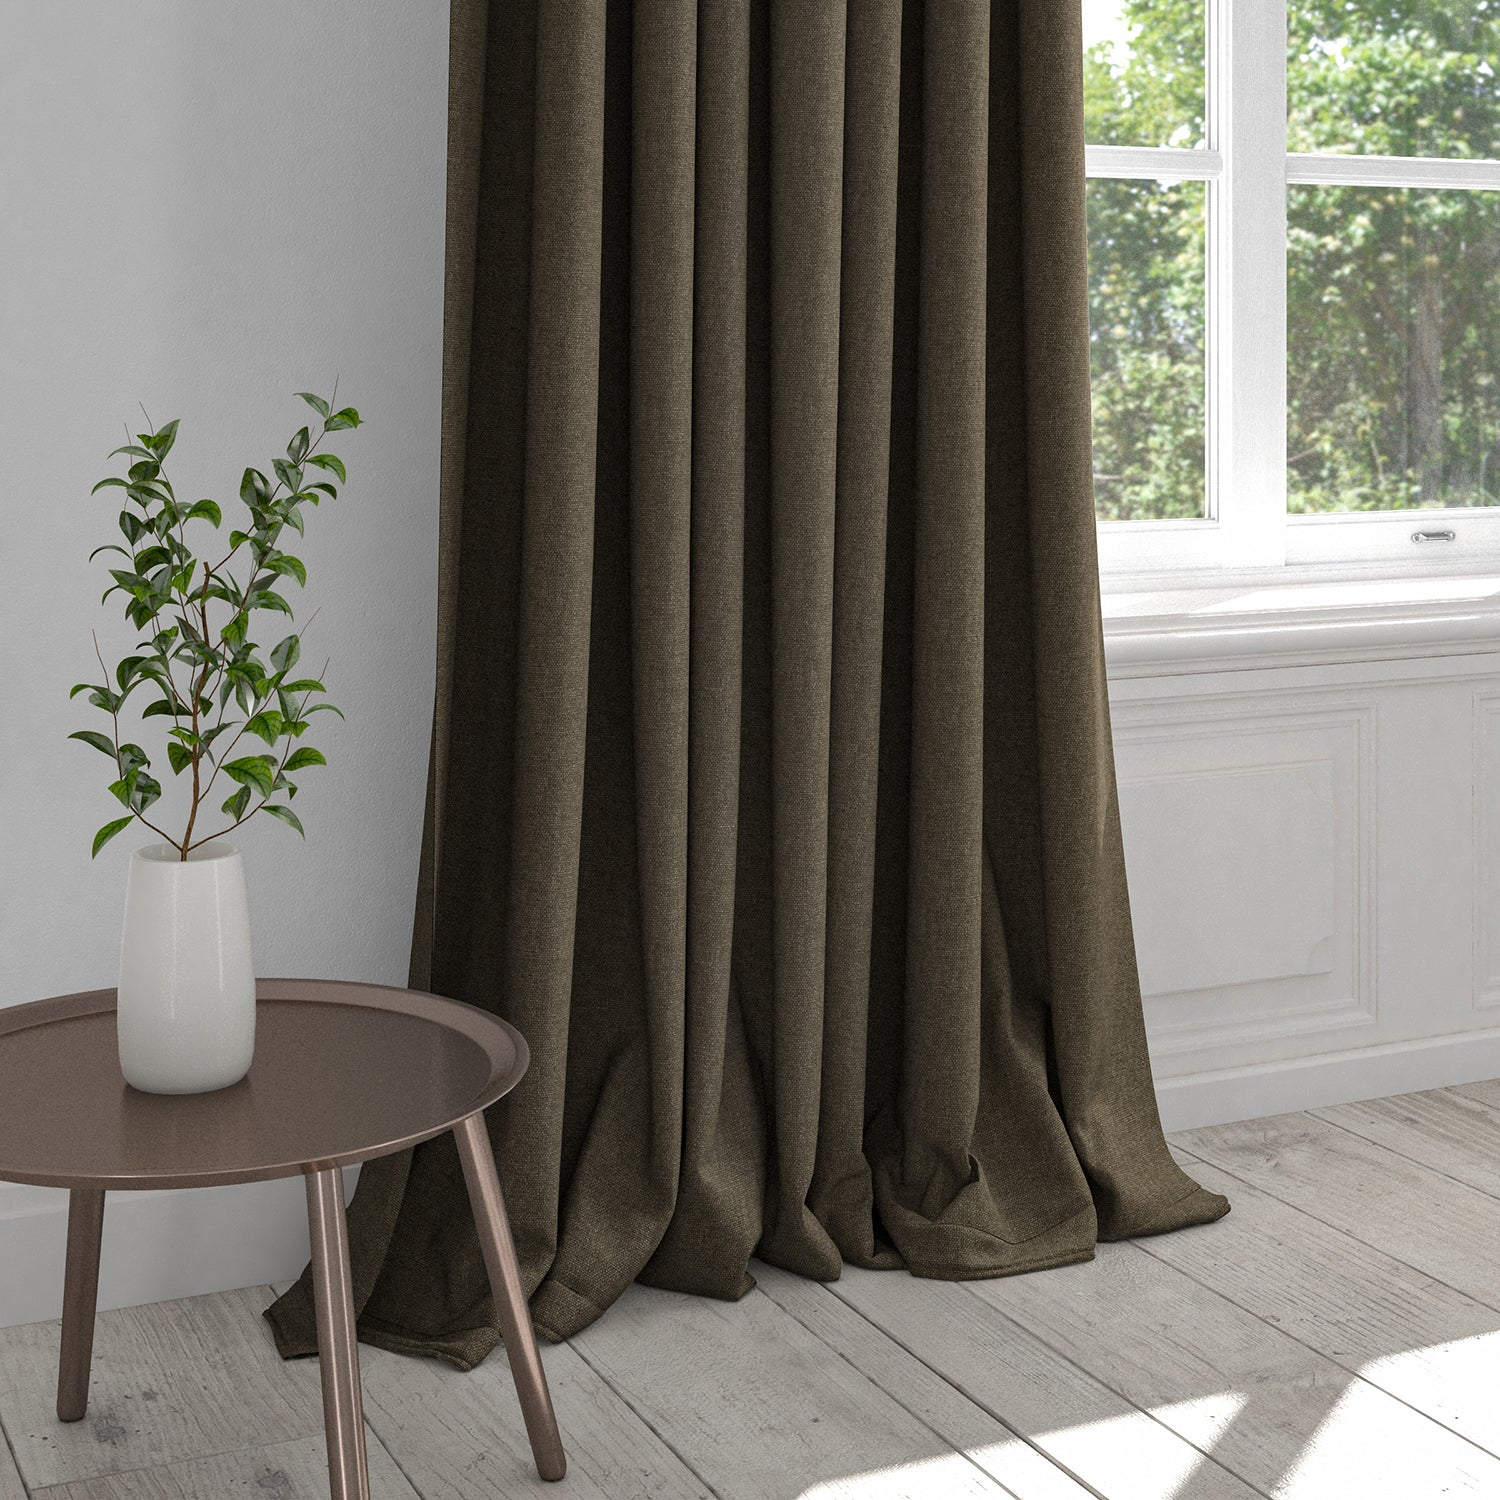 Curtain in a brown cotton washable furnishing fabric